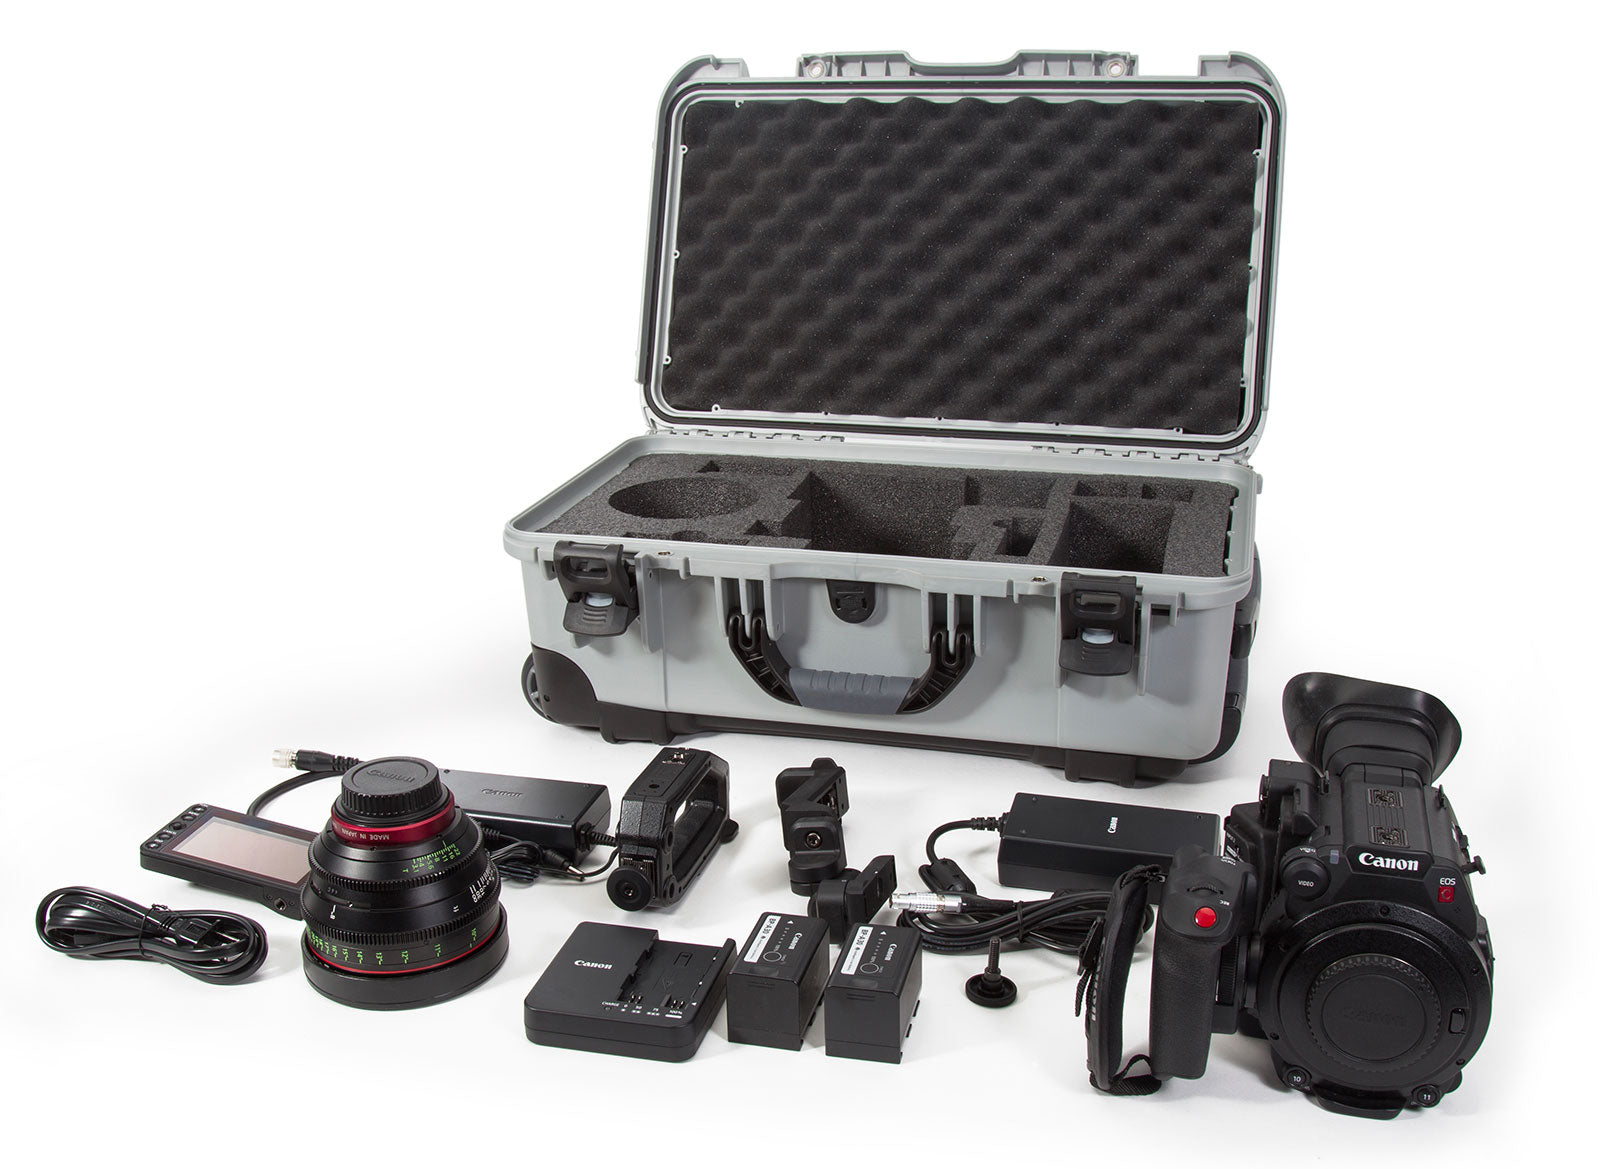 Nanuk 935 Hard Case for Canon Video Camera